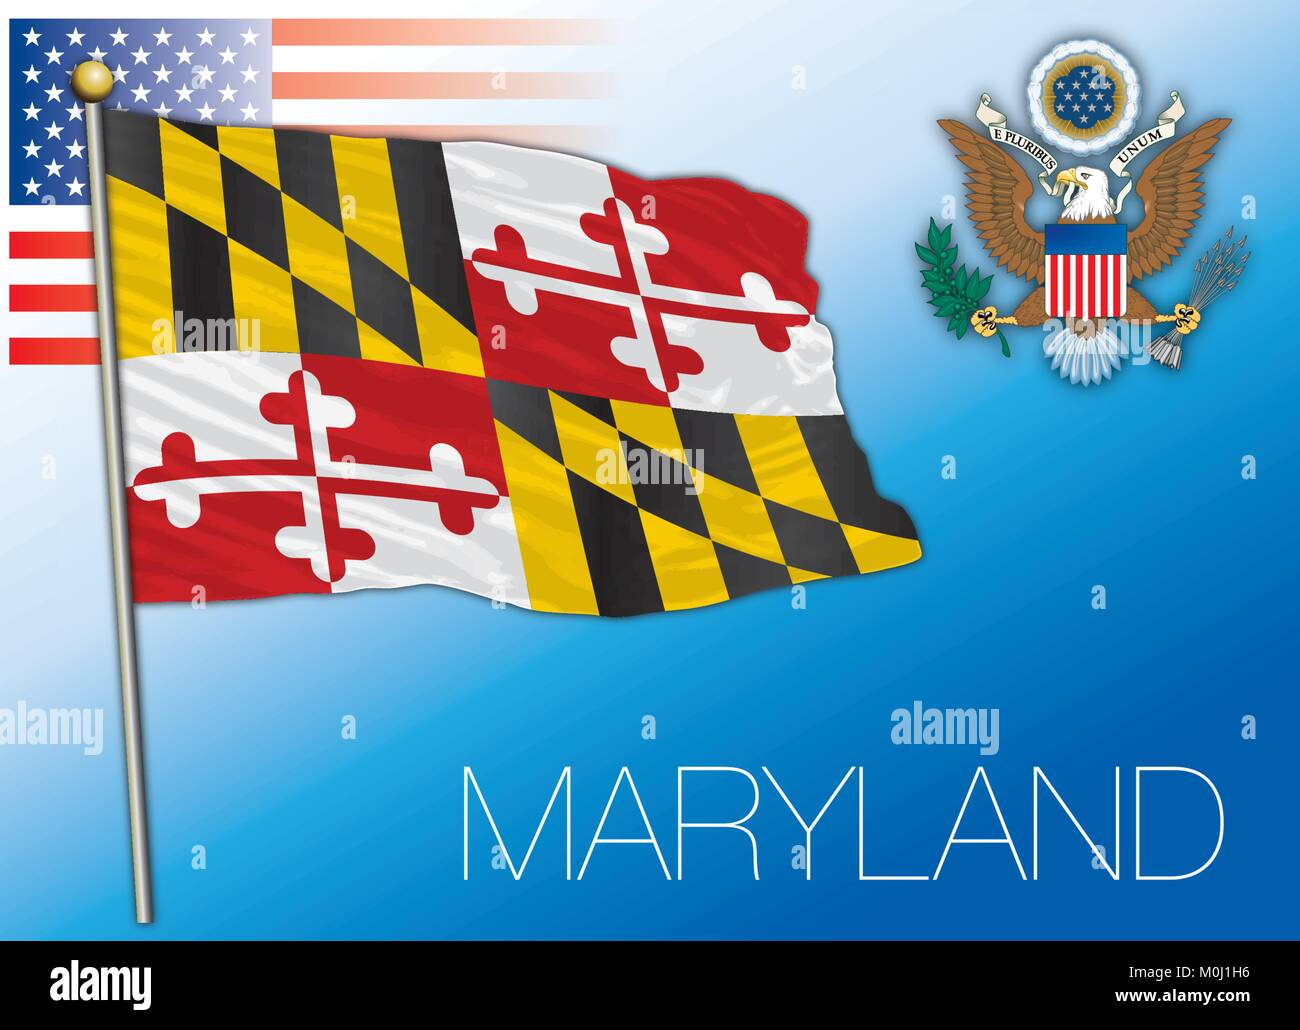 Maryland federal state flag, United States - Stock Vector